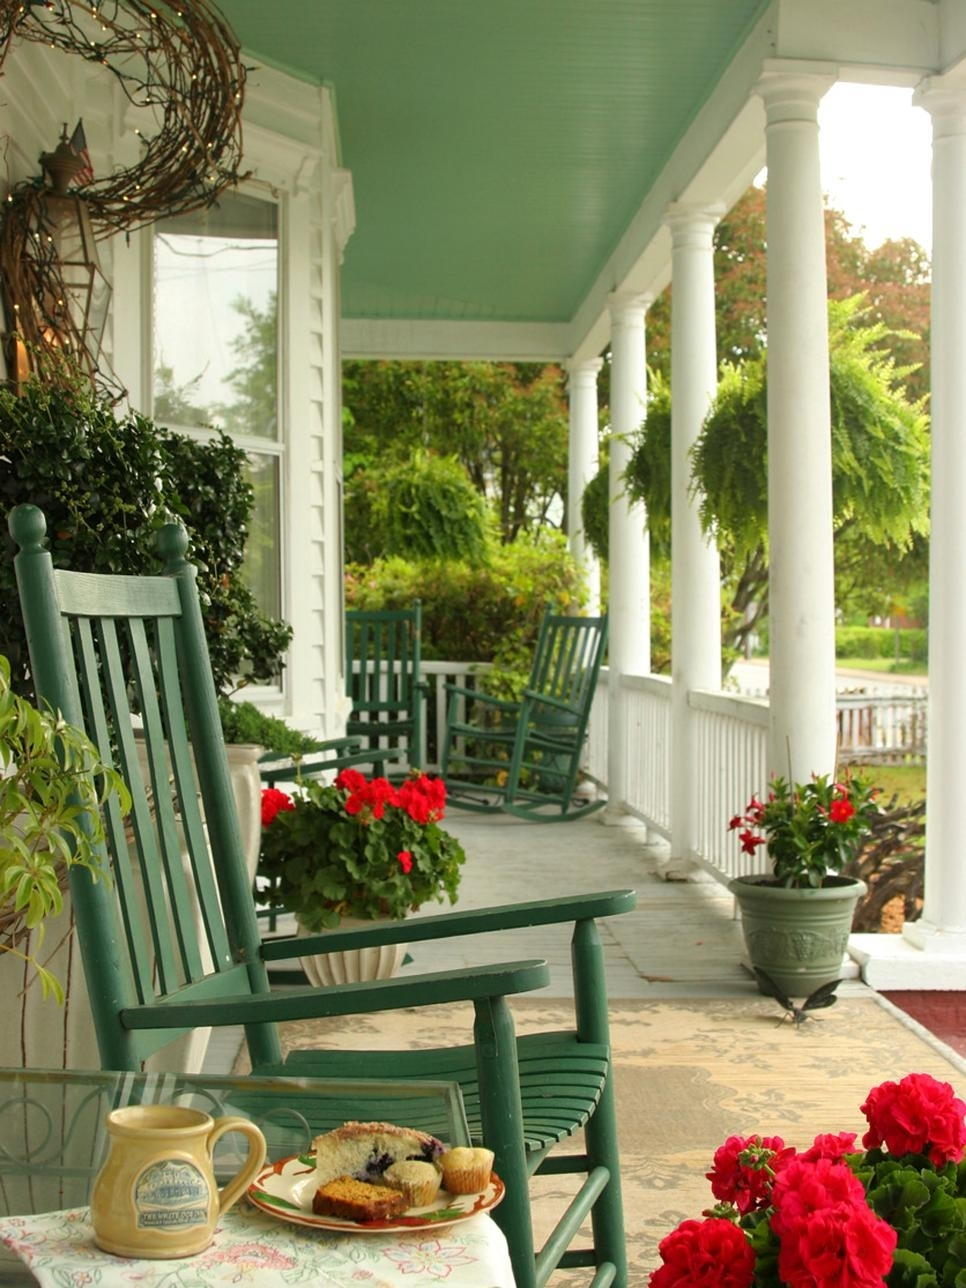 10 Cute Fall Front Porch Decorating Ideas %name 2020